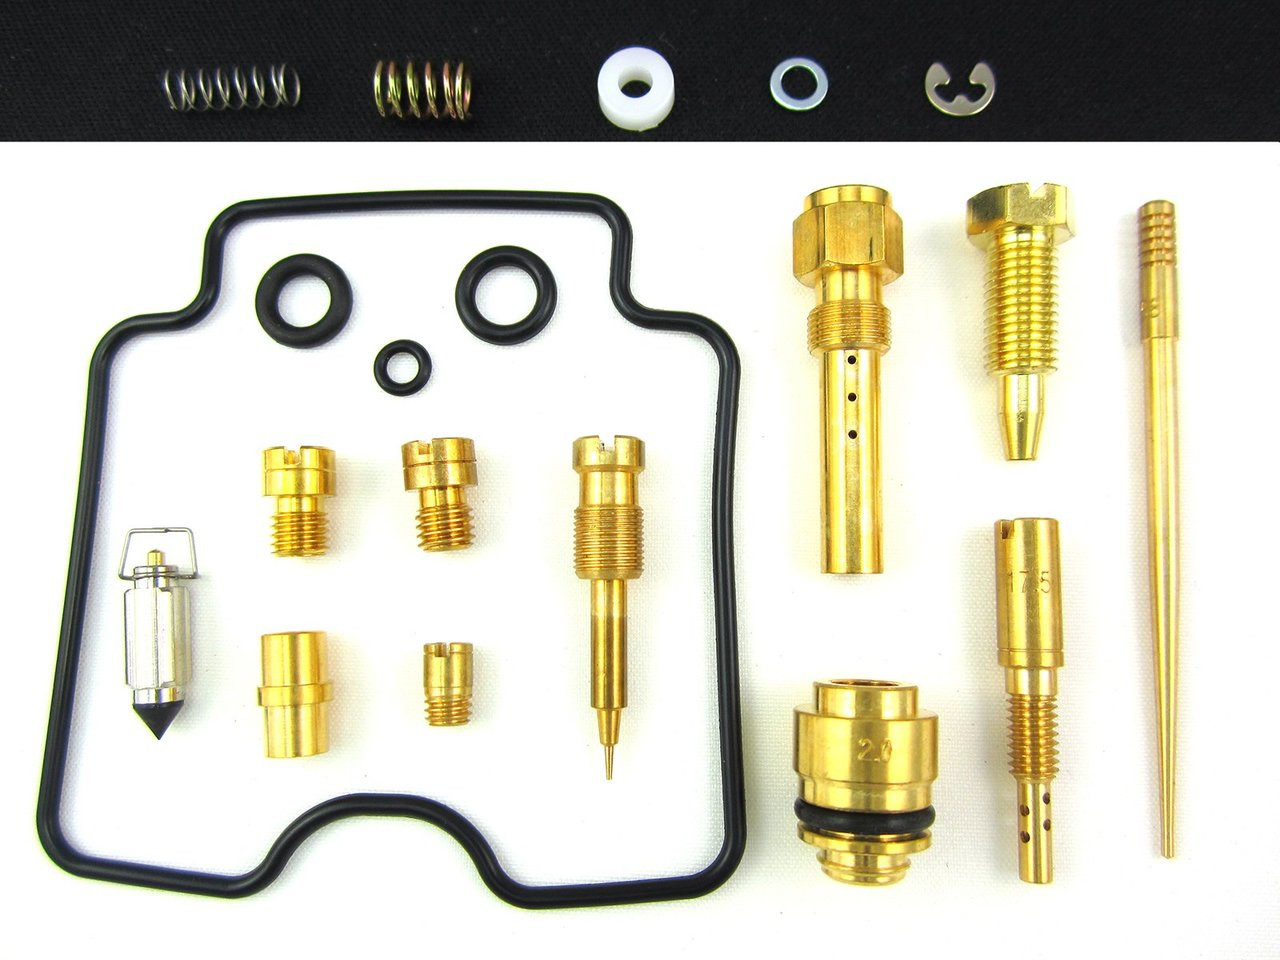 New Carburetor Rebuild Kit For Kawasaki KLF 250 A Bayou 03-06